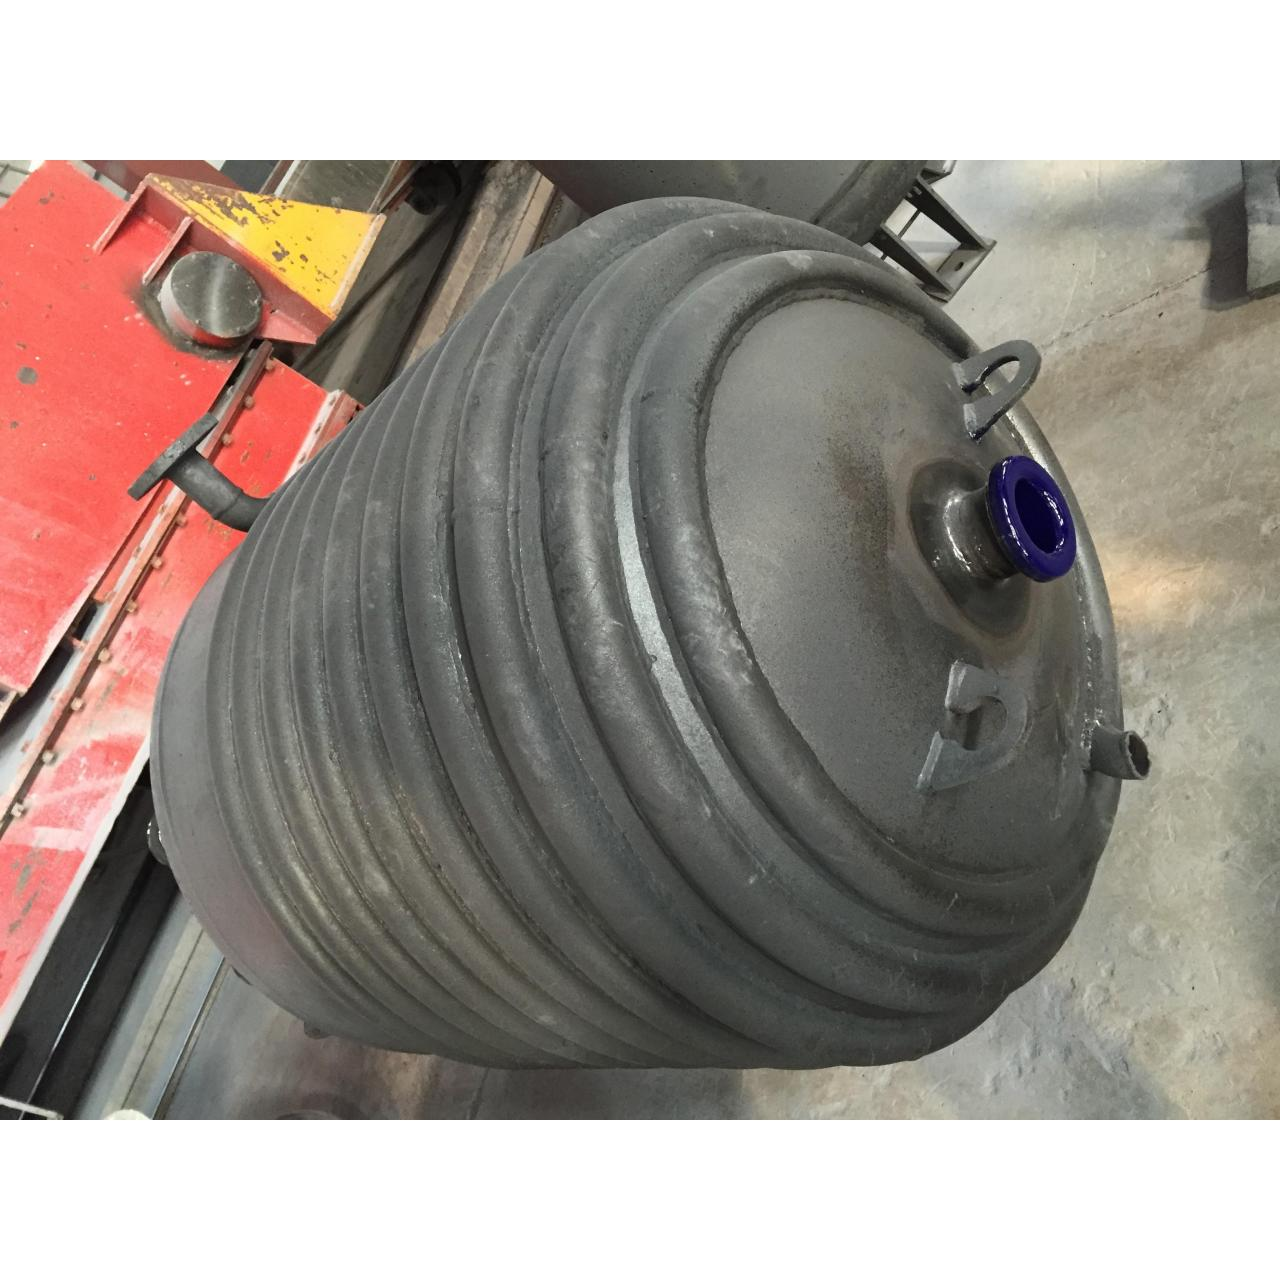 16mm Vessel thickness Glass Lined Reactors vessel equipped with agitation device